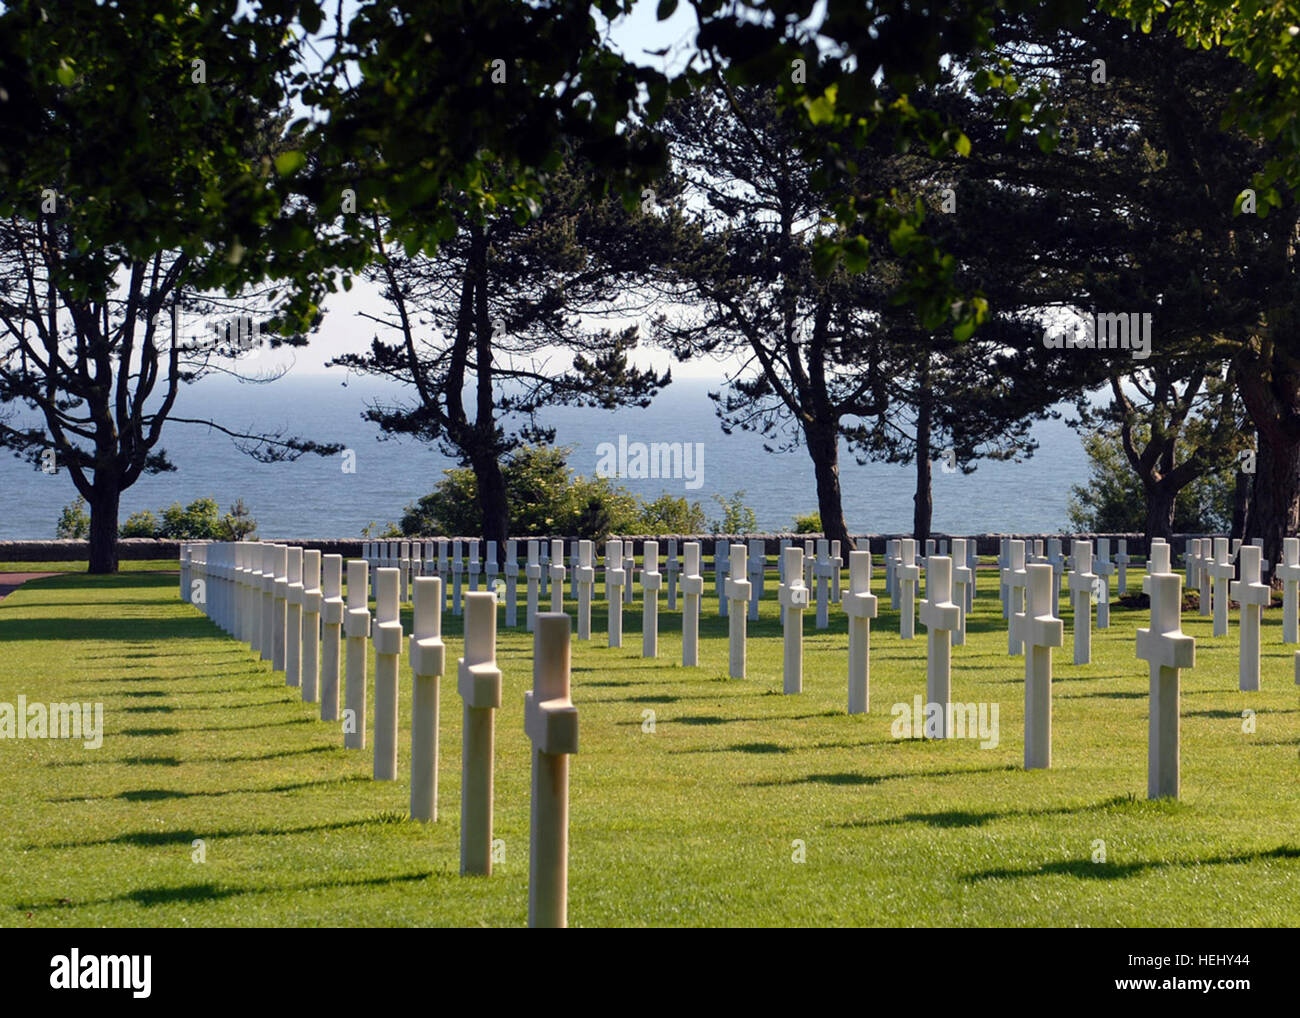 Rows Of White Crosses In The Normandy American Cemetery And Memorial Mark Graves